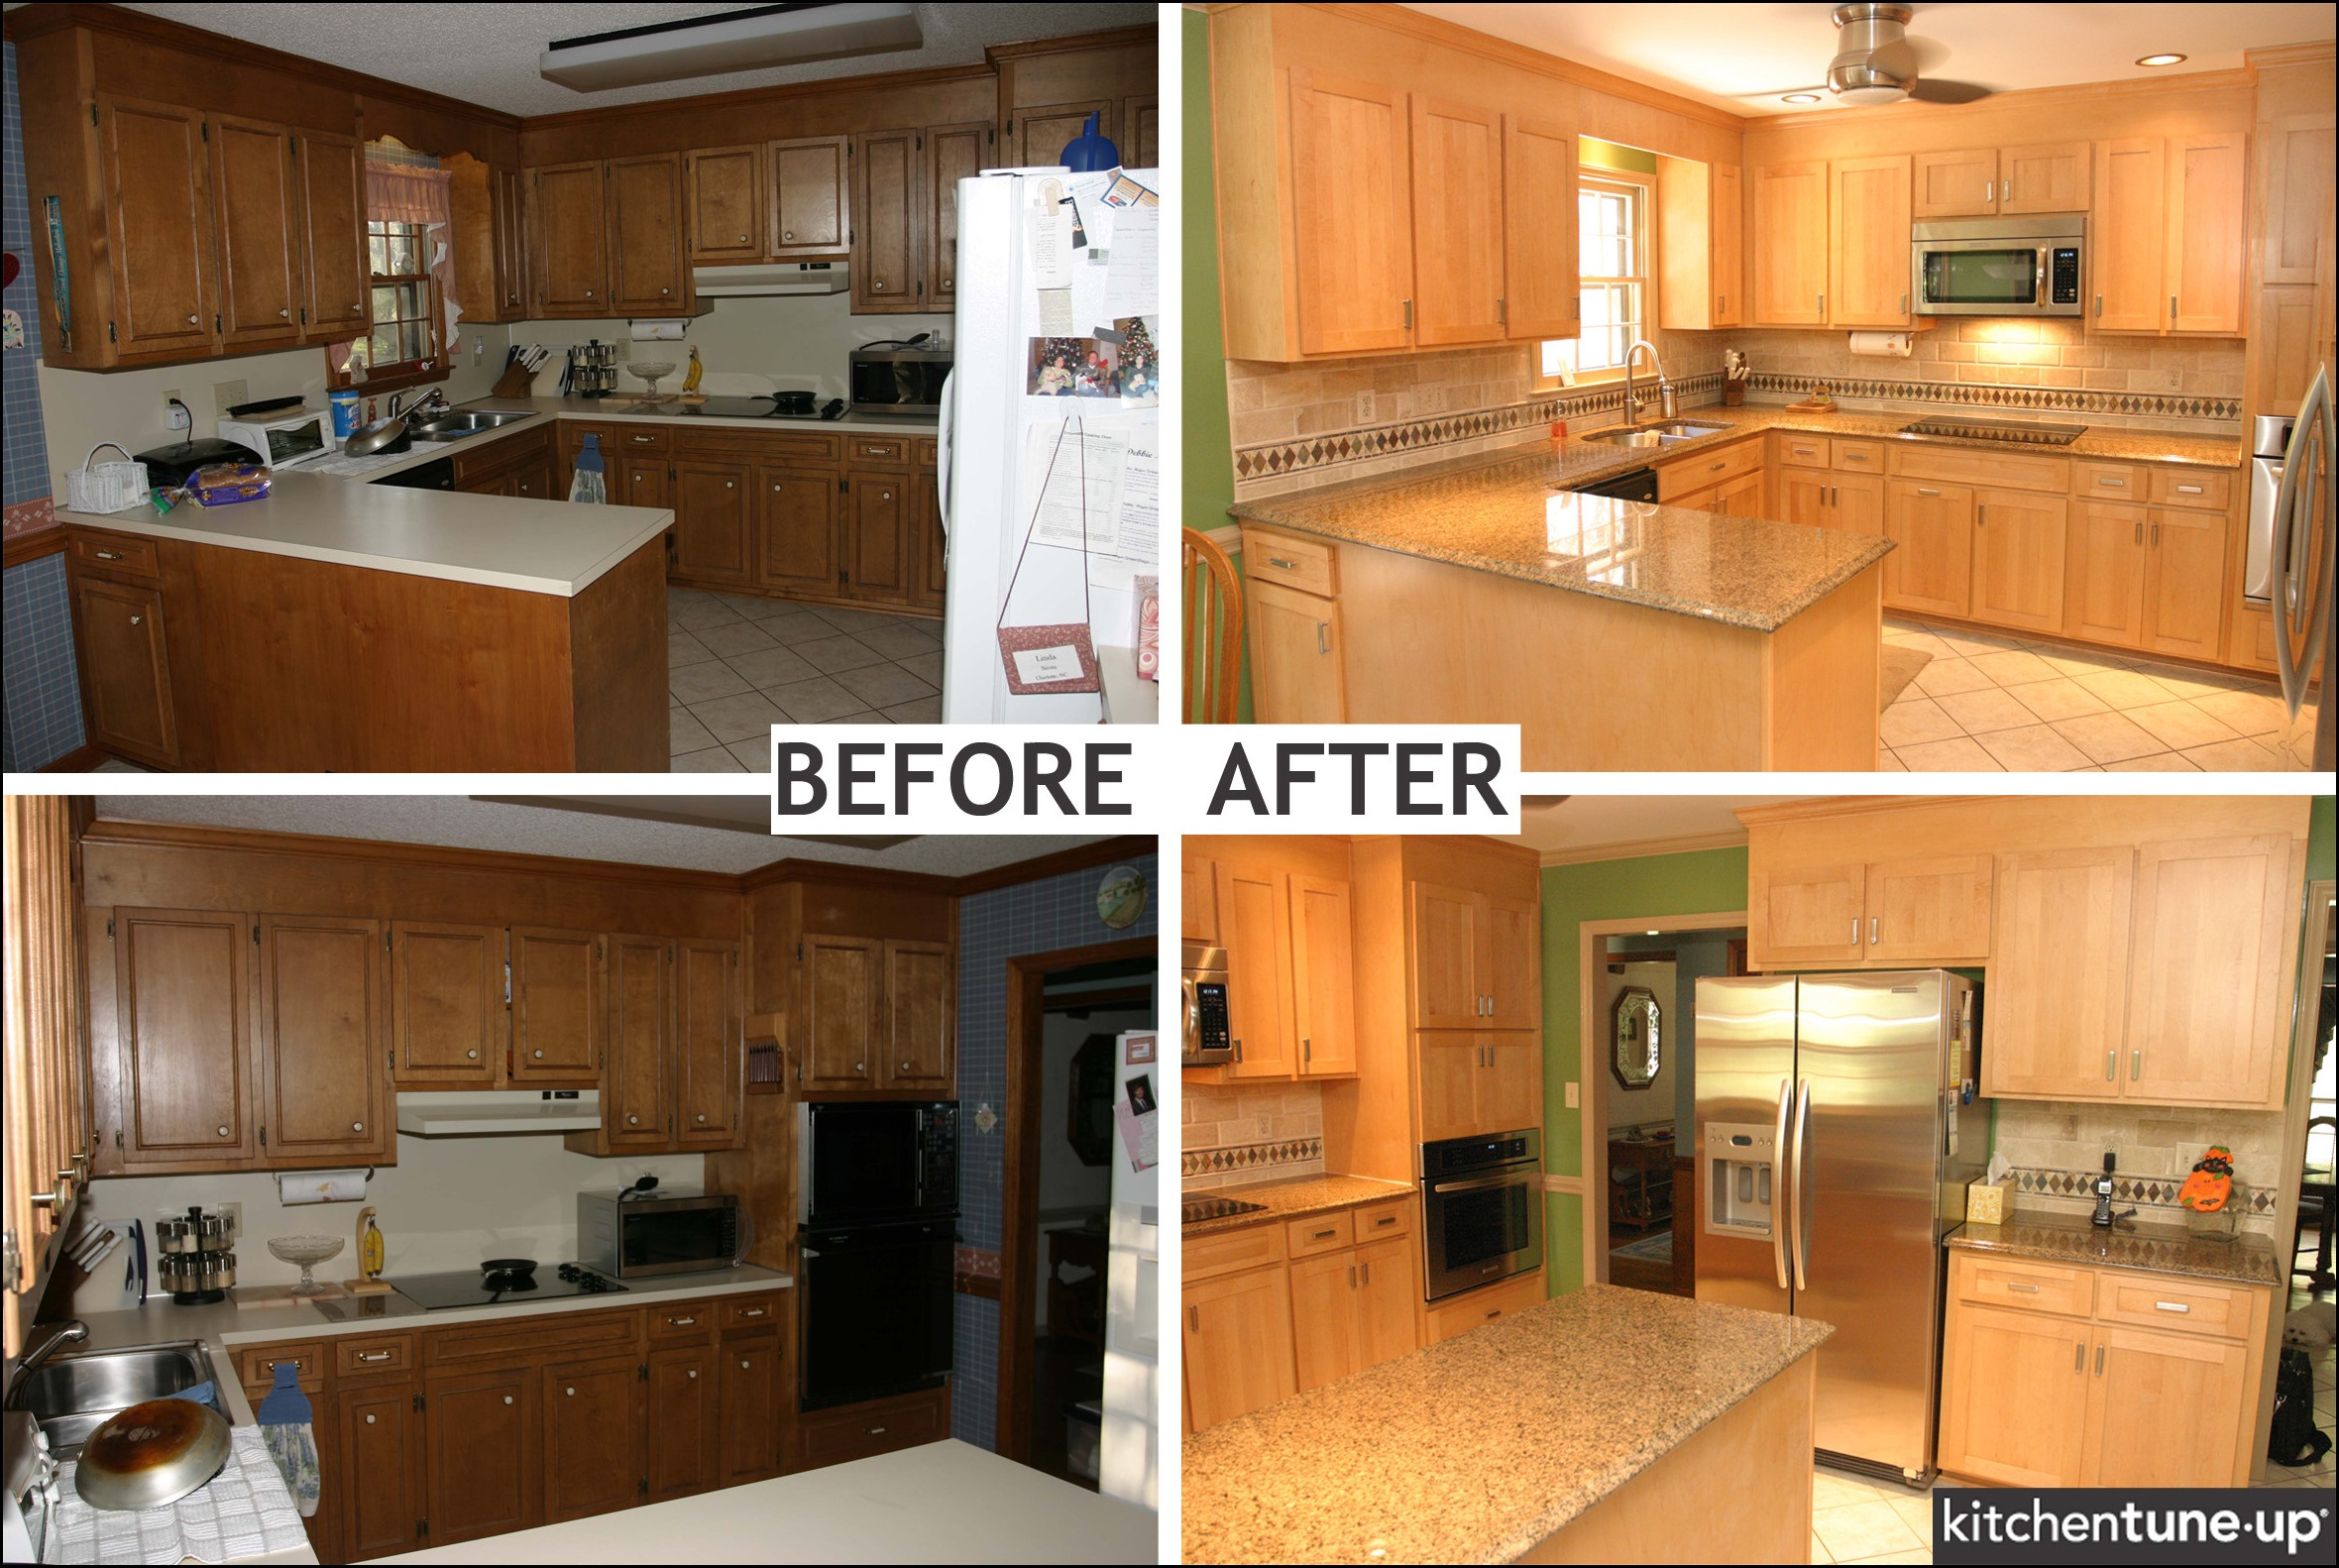 how-to-save-money-on-kitchen-cabinets-12 | on movies save money, holiday save money, people save money, tips save money, quotes save money, business save money, make money save money, wedding save money, inspiration save money, computers save money, tools save money, community save money, hiw ro save money, home save money, funny save money, save time and money, save more money, keep calm and save money, help save money, save your money,